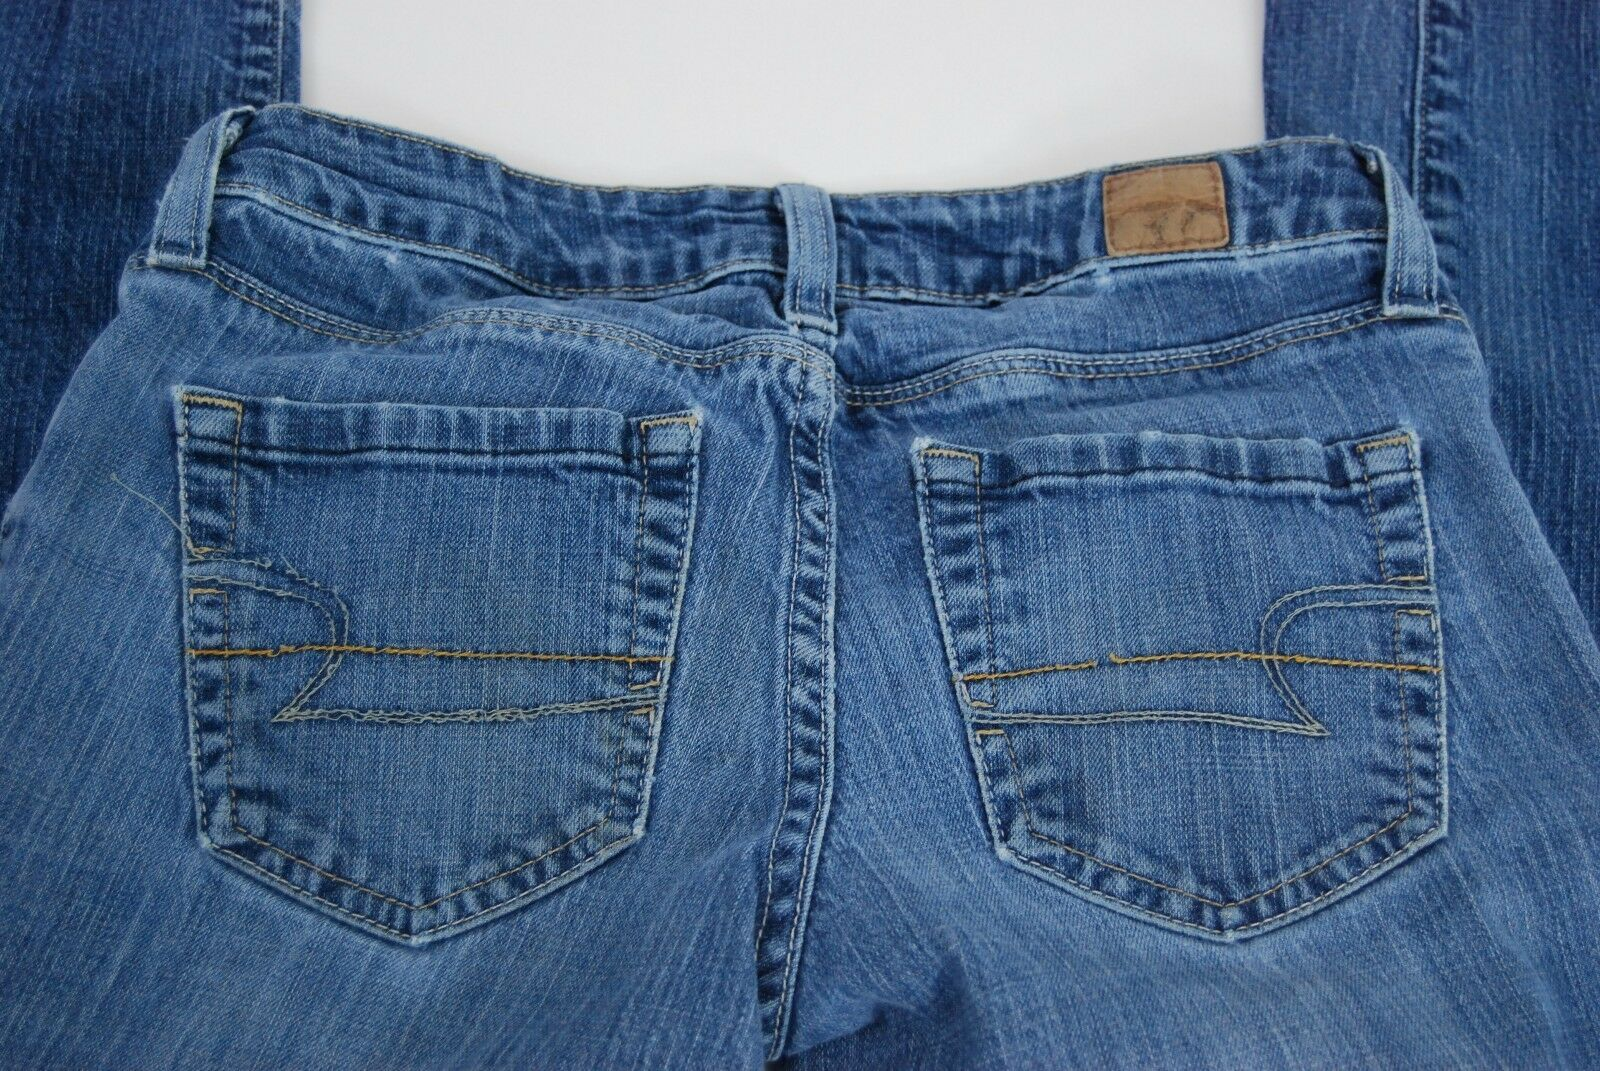 Women's American Eagle Skinny Jeans - Size 0 image 7